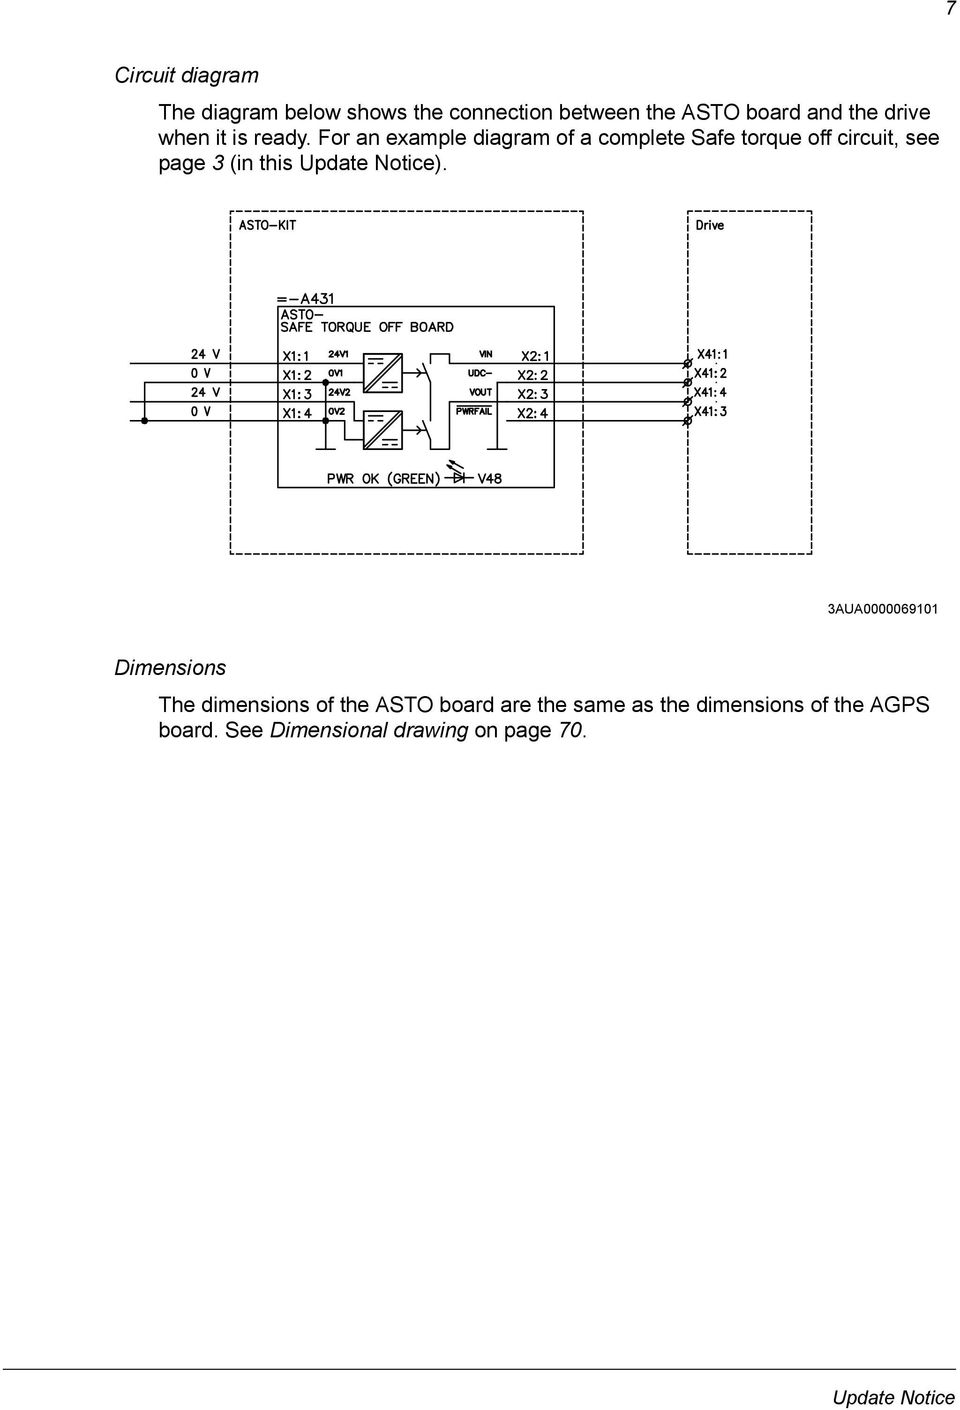 For an example diagram of a complete Safe torque off circuit, see page 3 (in this Update